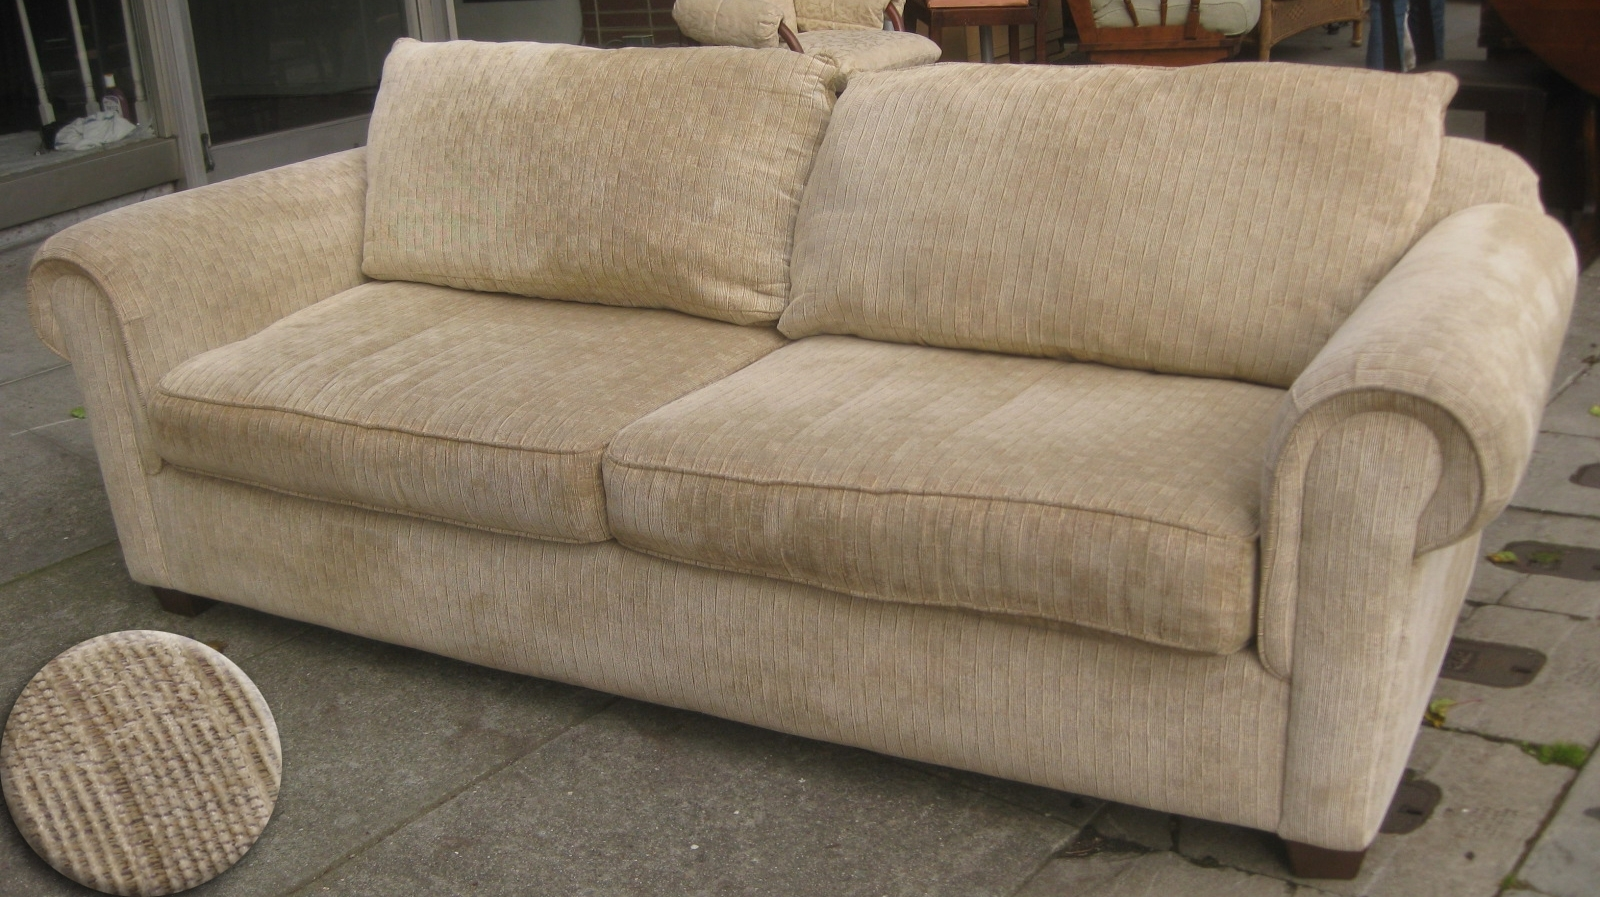 Uhuru Furniture & Collectibles: Sold – Soft Sofa – $80 Regarding 2019 Soft Sofas (View 18 of 20)